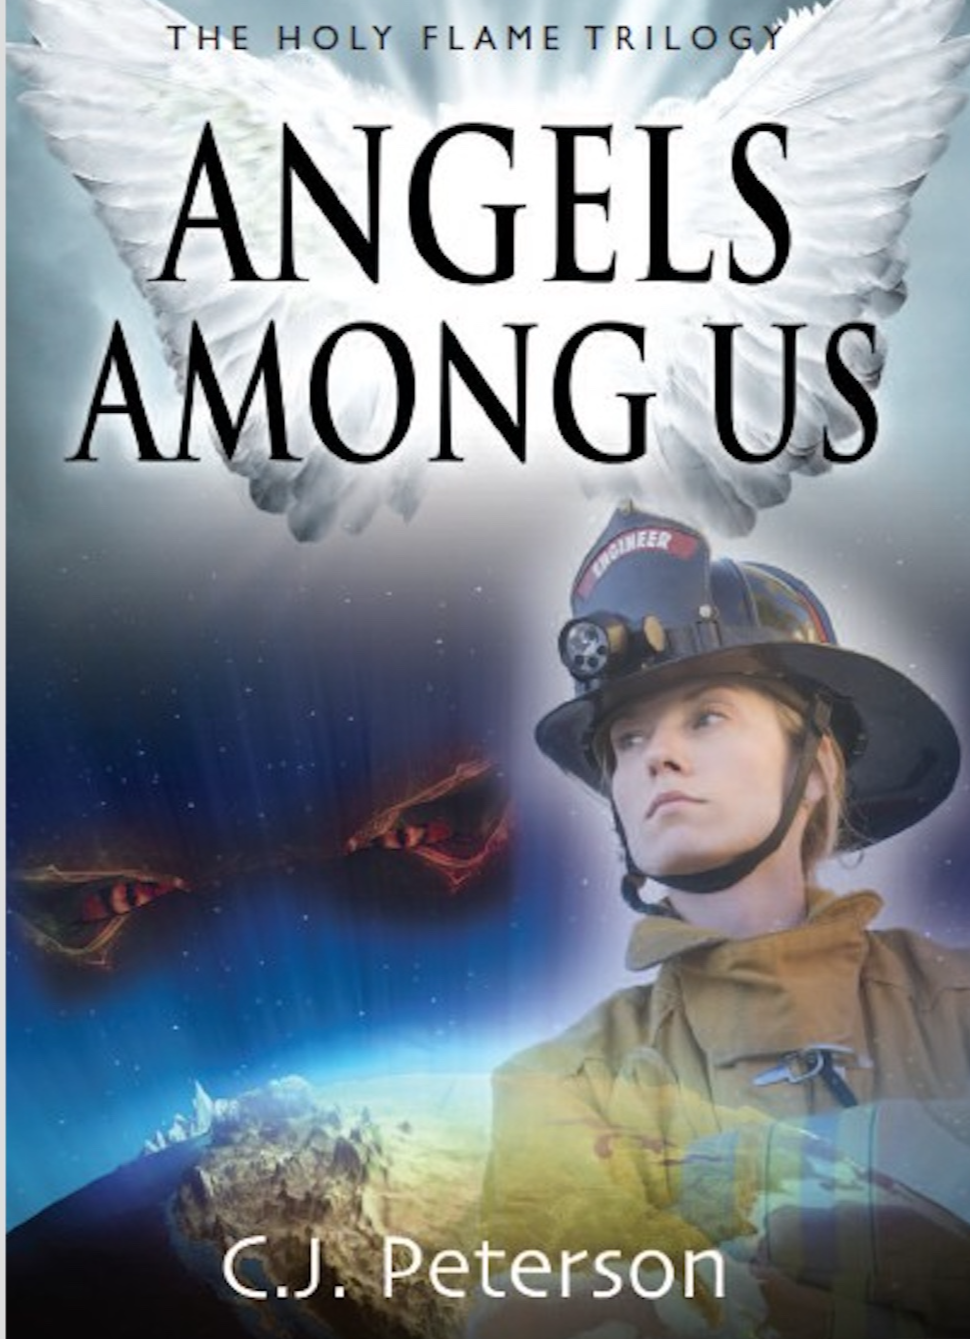 ANGELS AMONG US (Book 3, The Holy Flame Trilogy